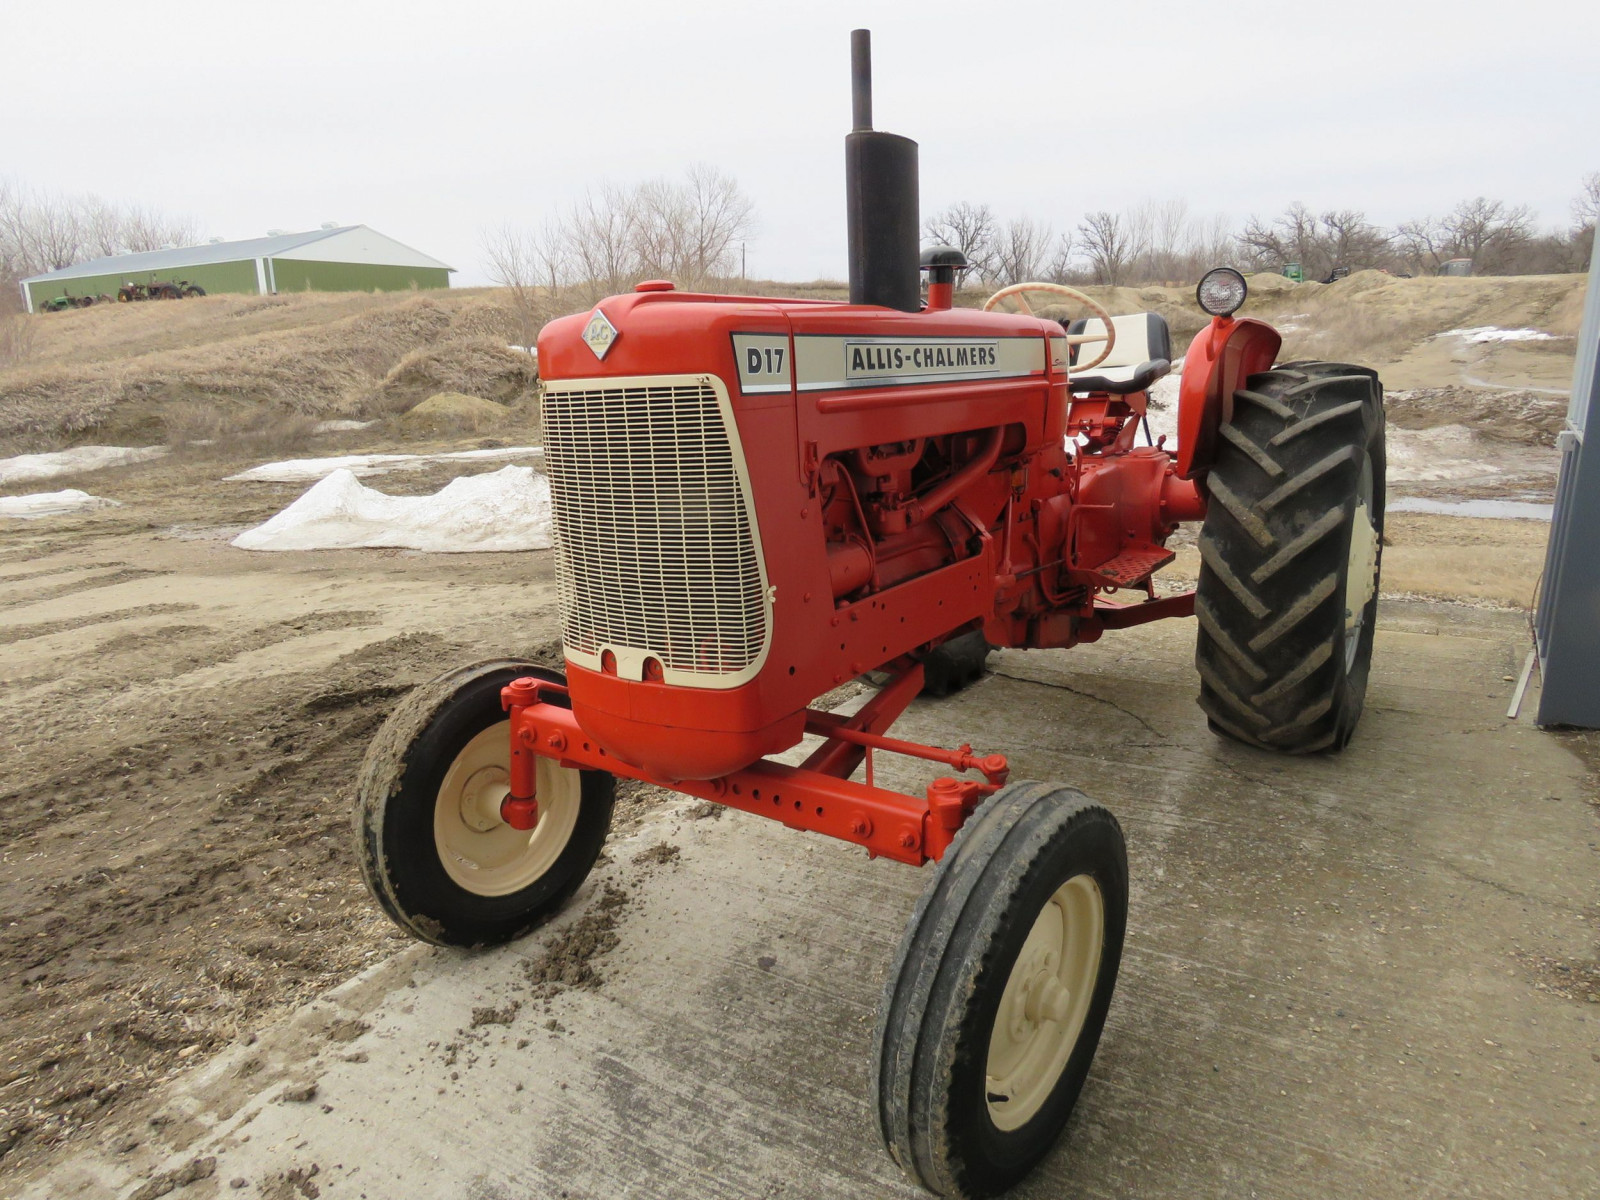 Allis Chalmers D17 Tractor - Image 1